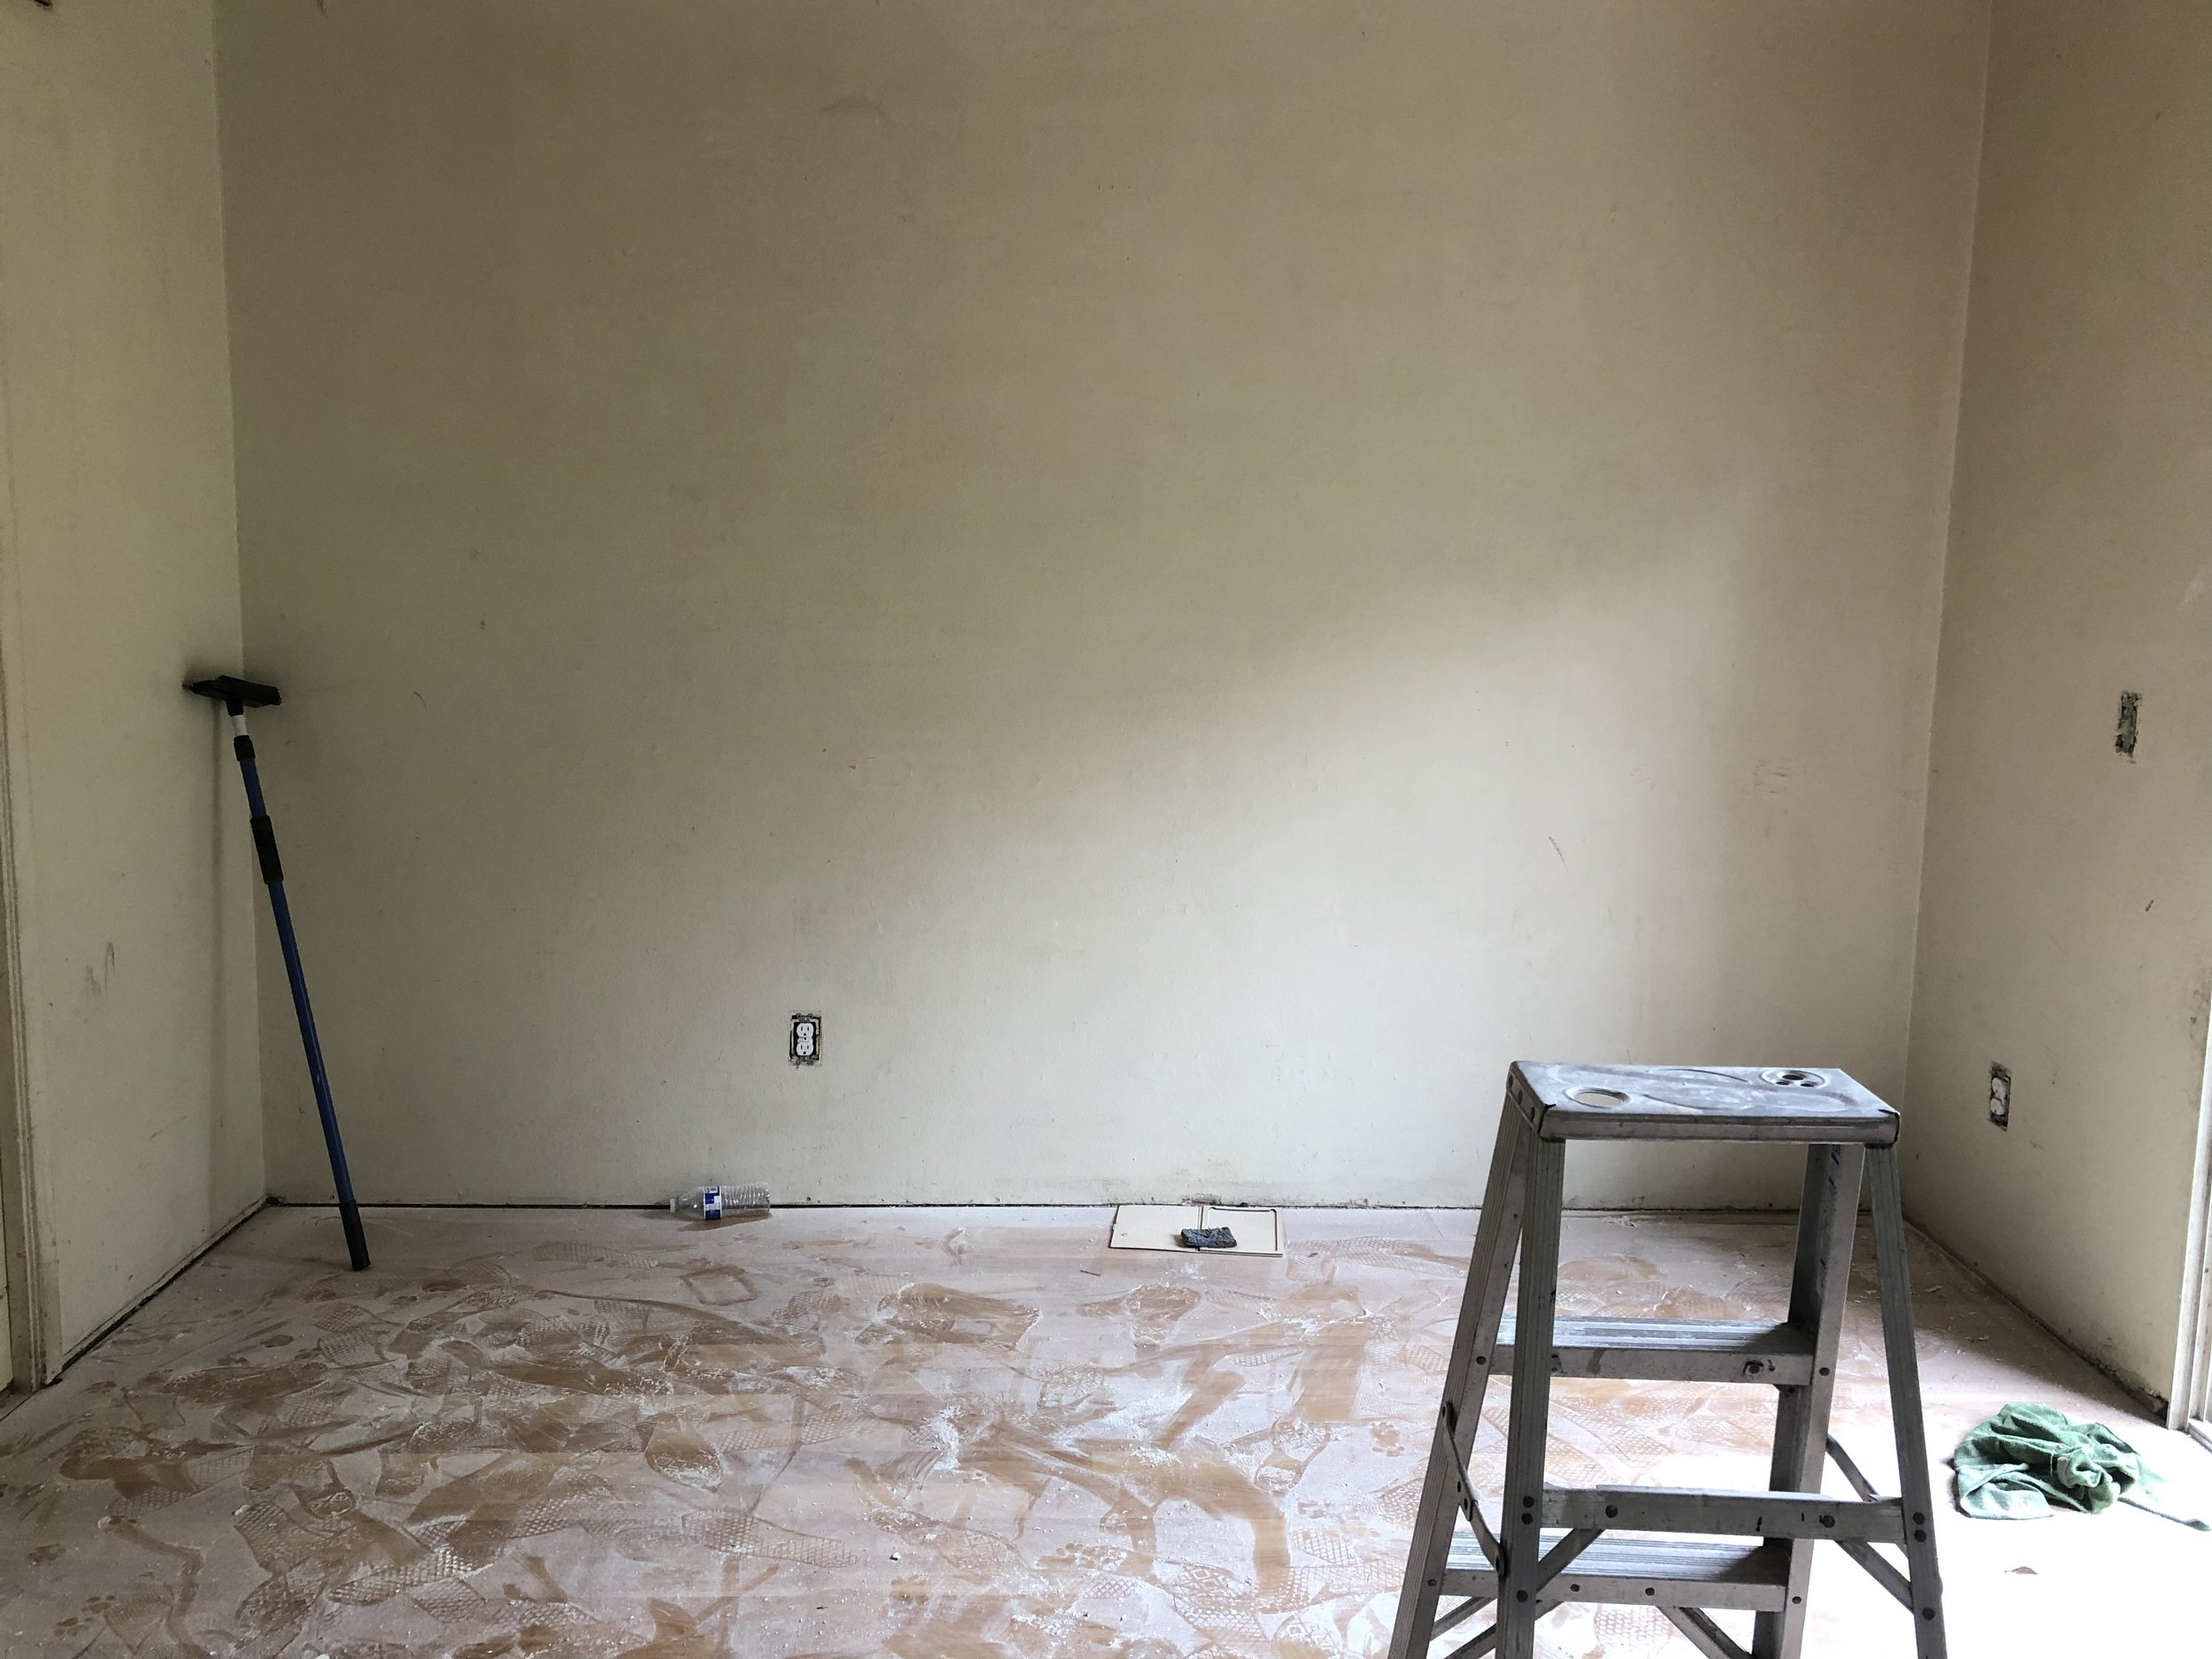 Since this is the north/south position I'm going to set up a photo studio here. So I can room to move up close to step back for a great shot. This wall is done but I forgot to take a picture.